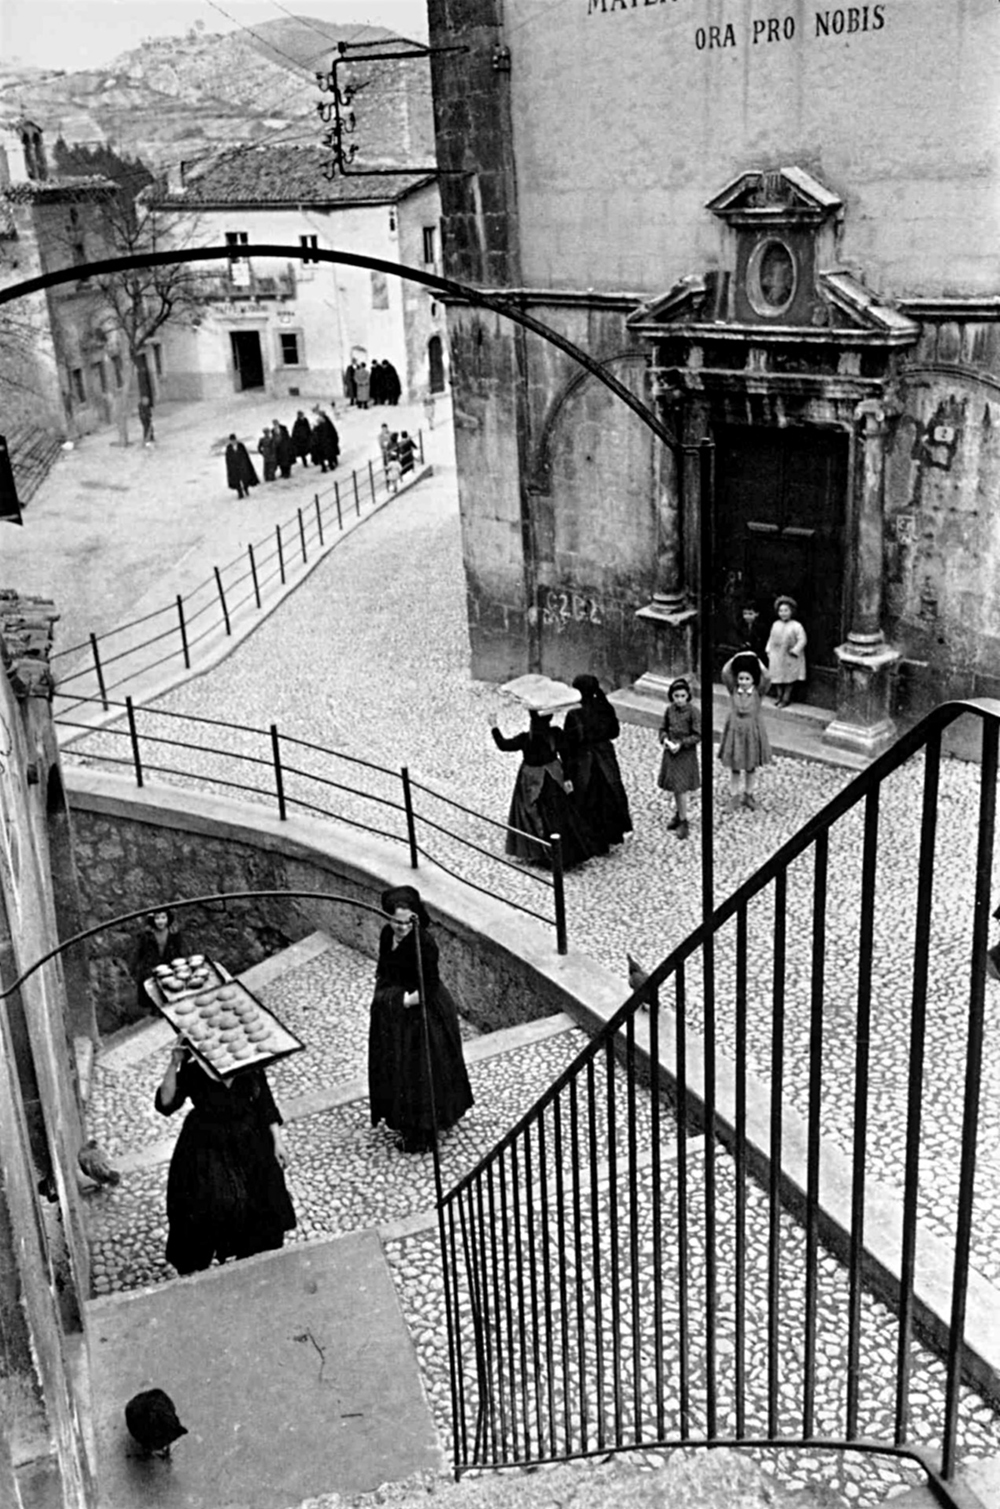 Henri Cartier-Bresson  Aquila Degli Abruzzi, Italy  1952 Silver gelatin print 12 x 16 inches signed on recto in ink © Foundation Henri Cartier-Bresson / Magnum Photos Courtesy Peter Fetterman Gallery